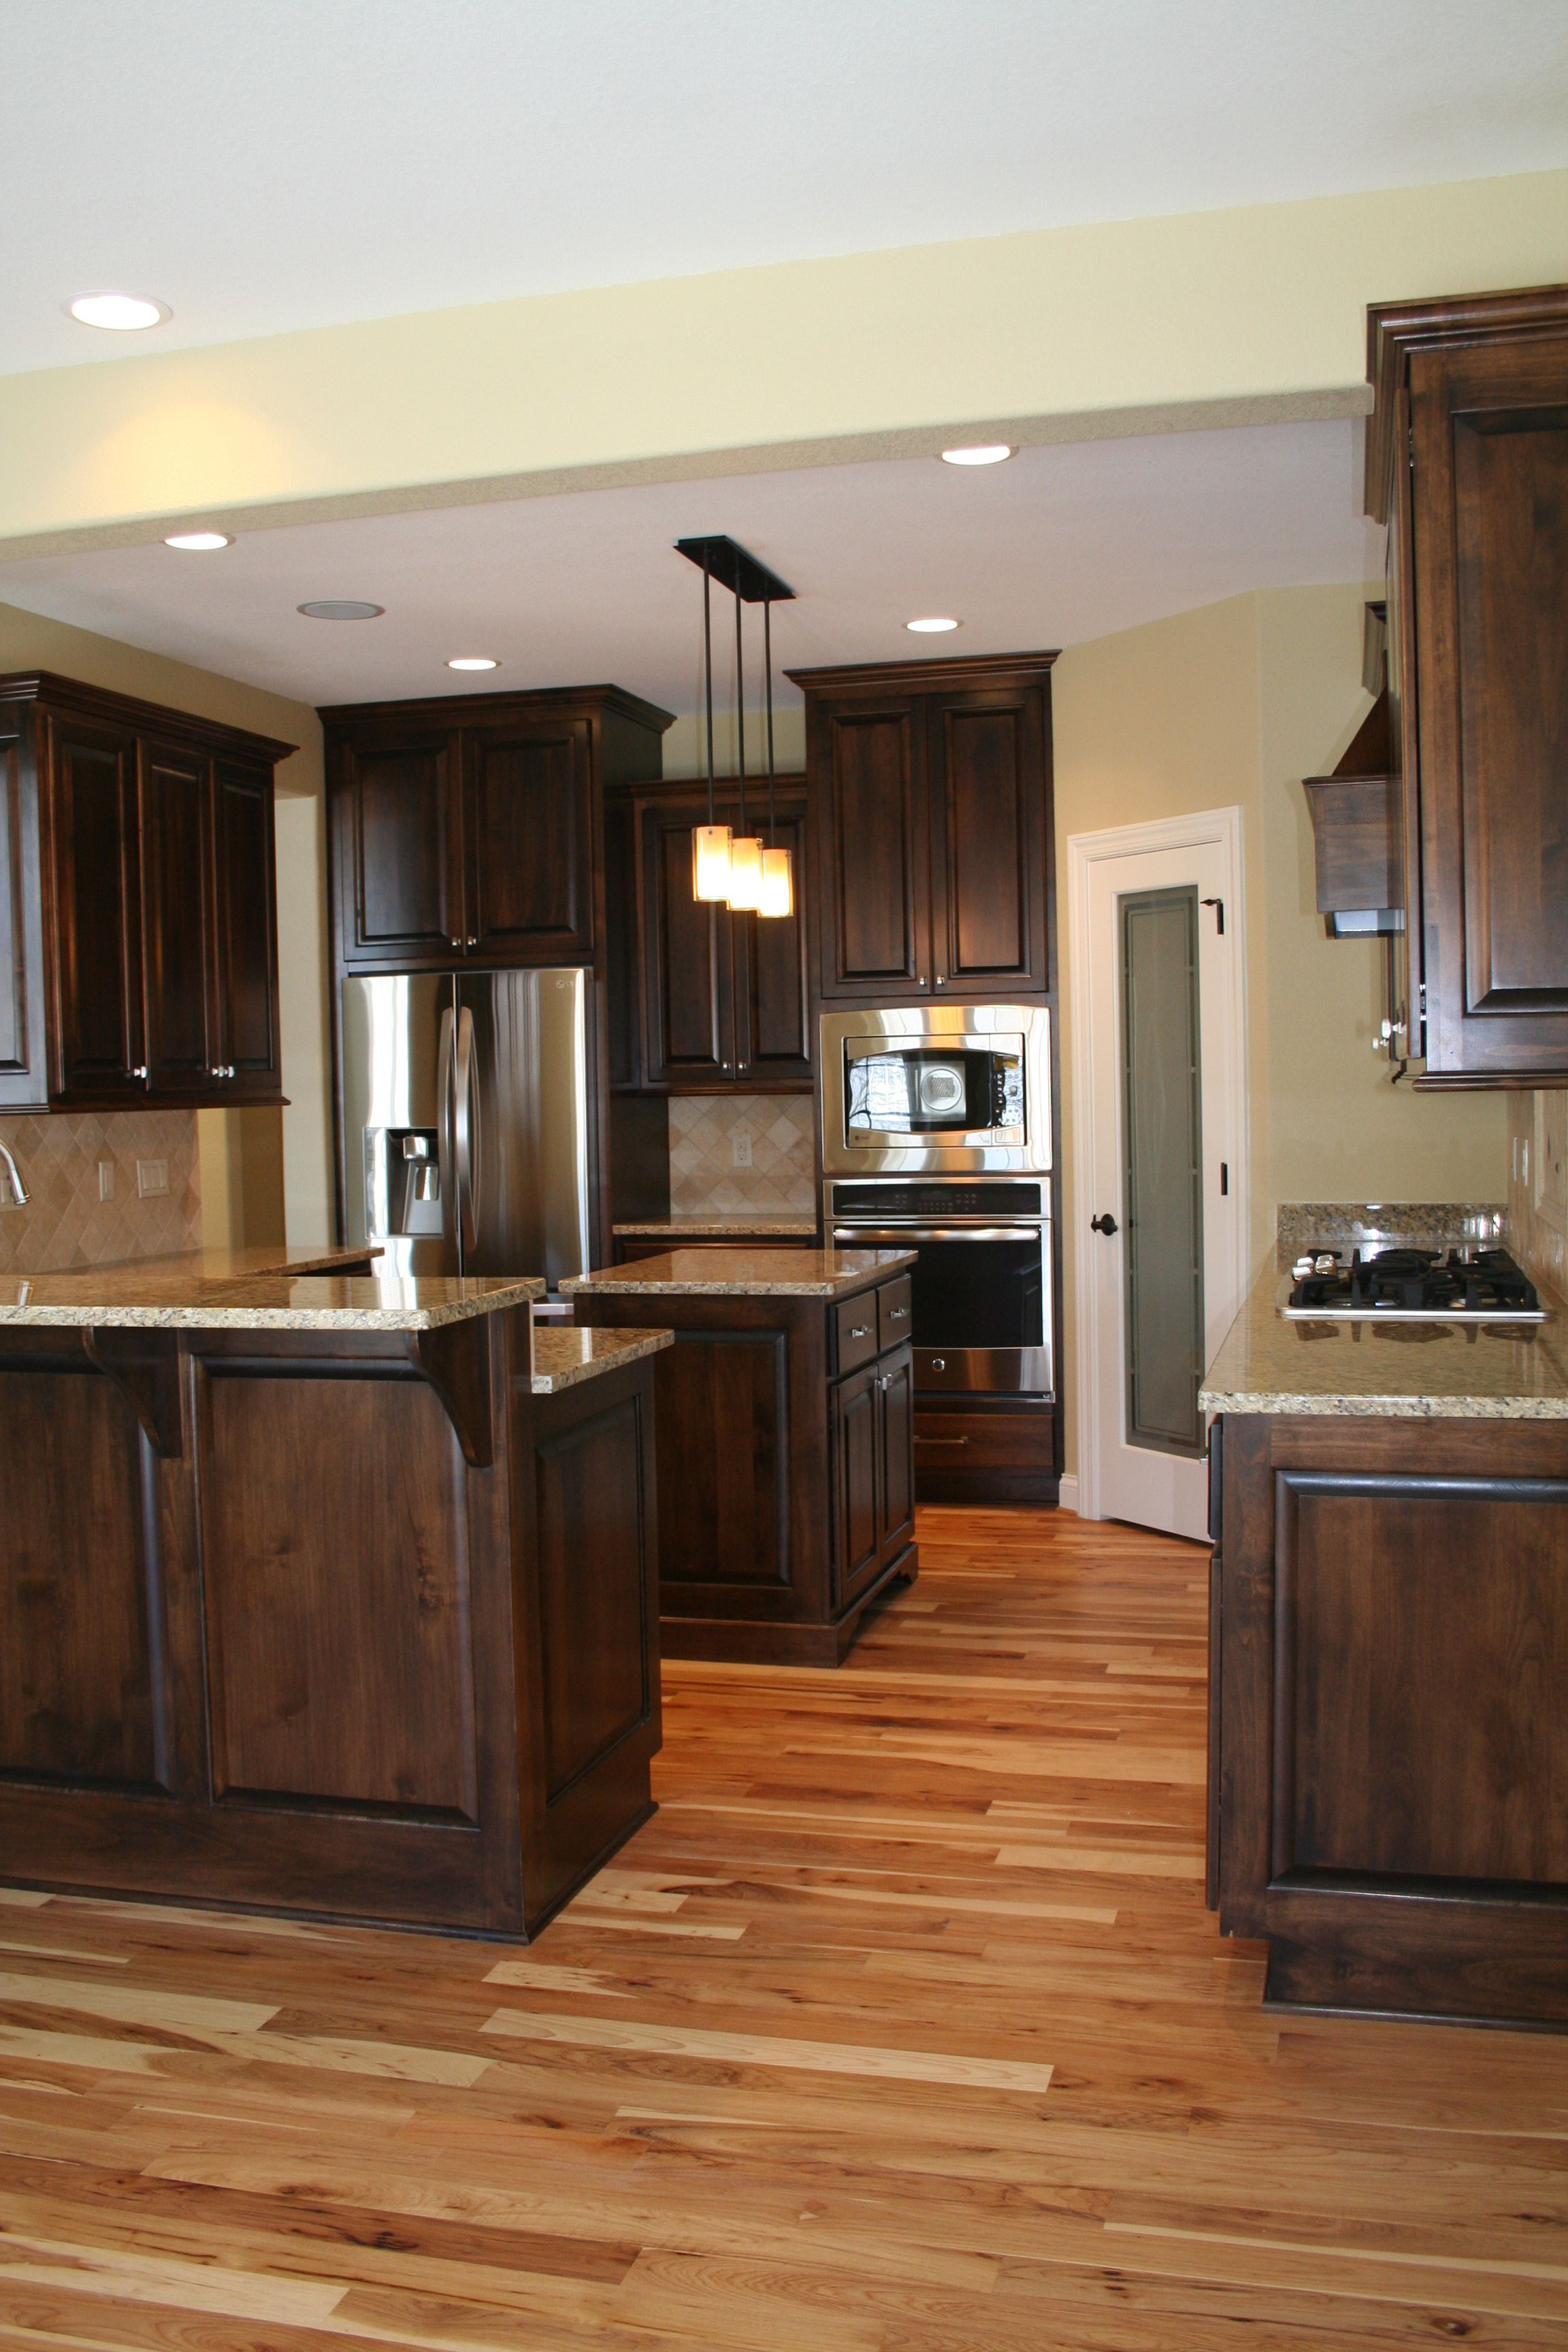 Alder Wood Cabinets Stainless Steel Appliances And Natural